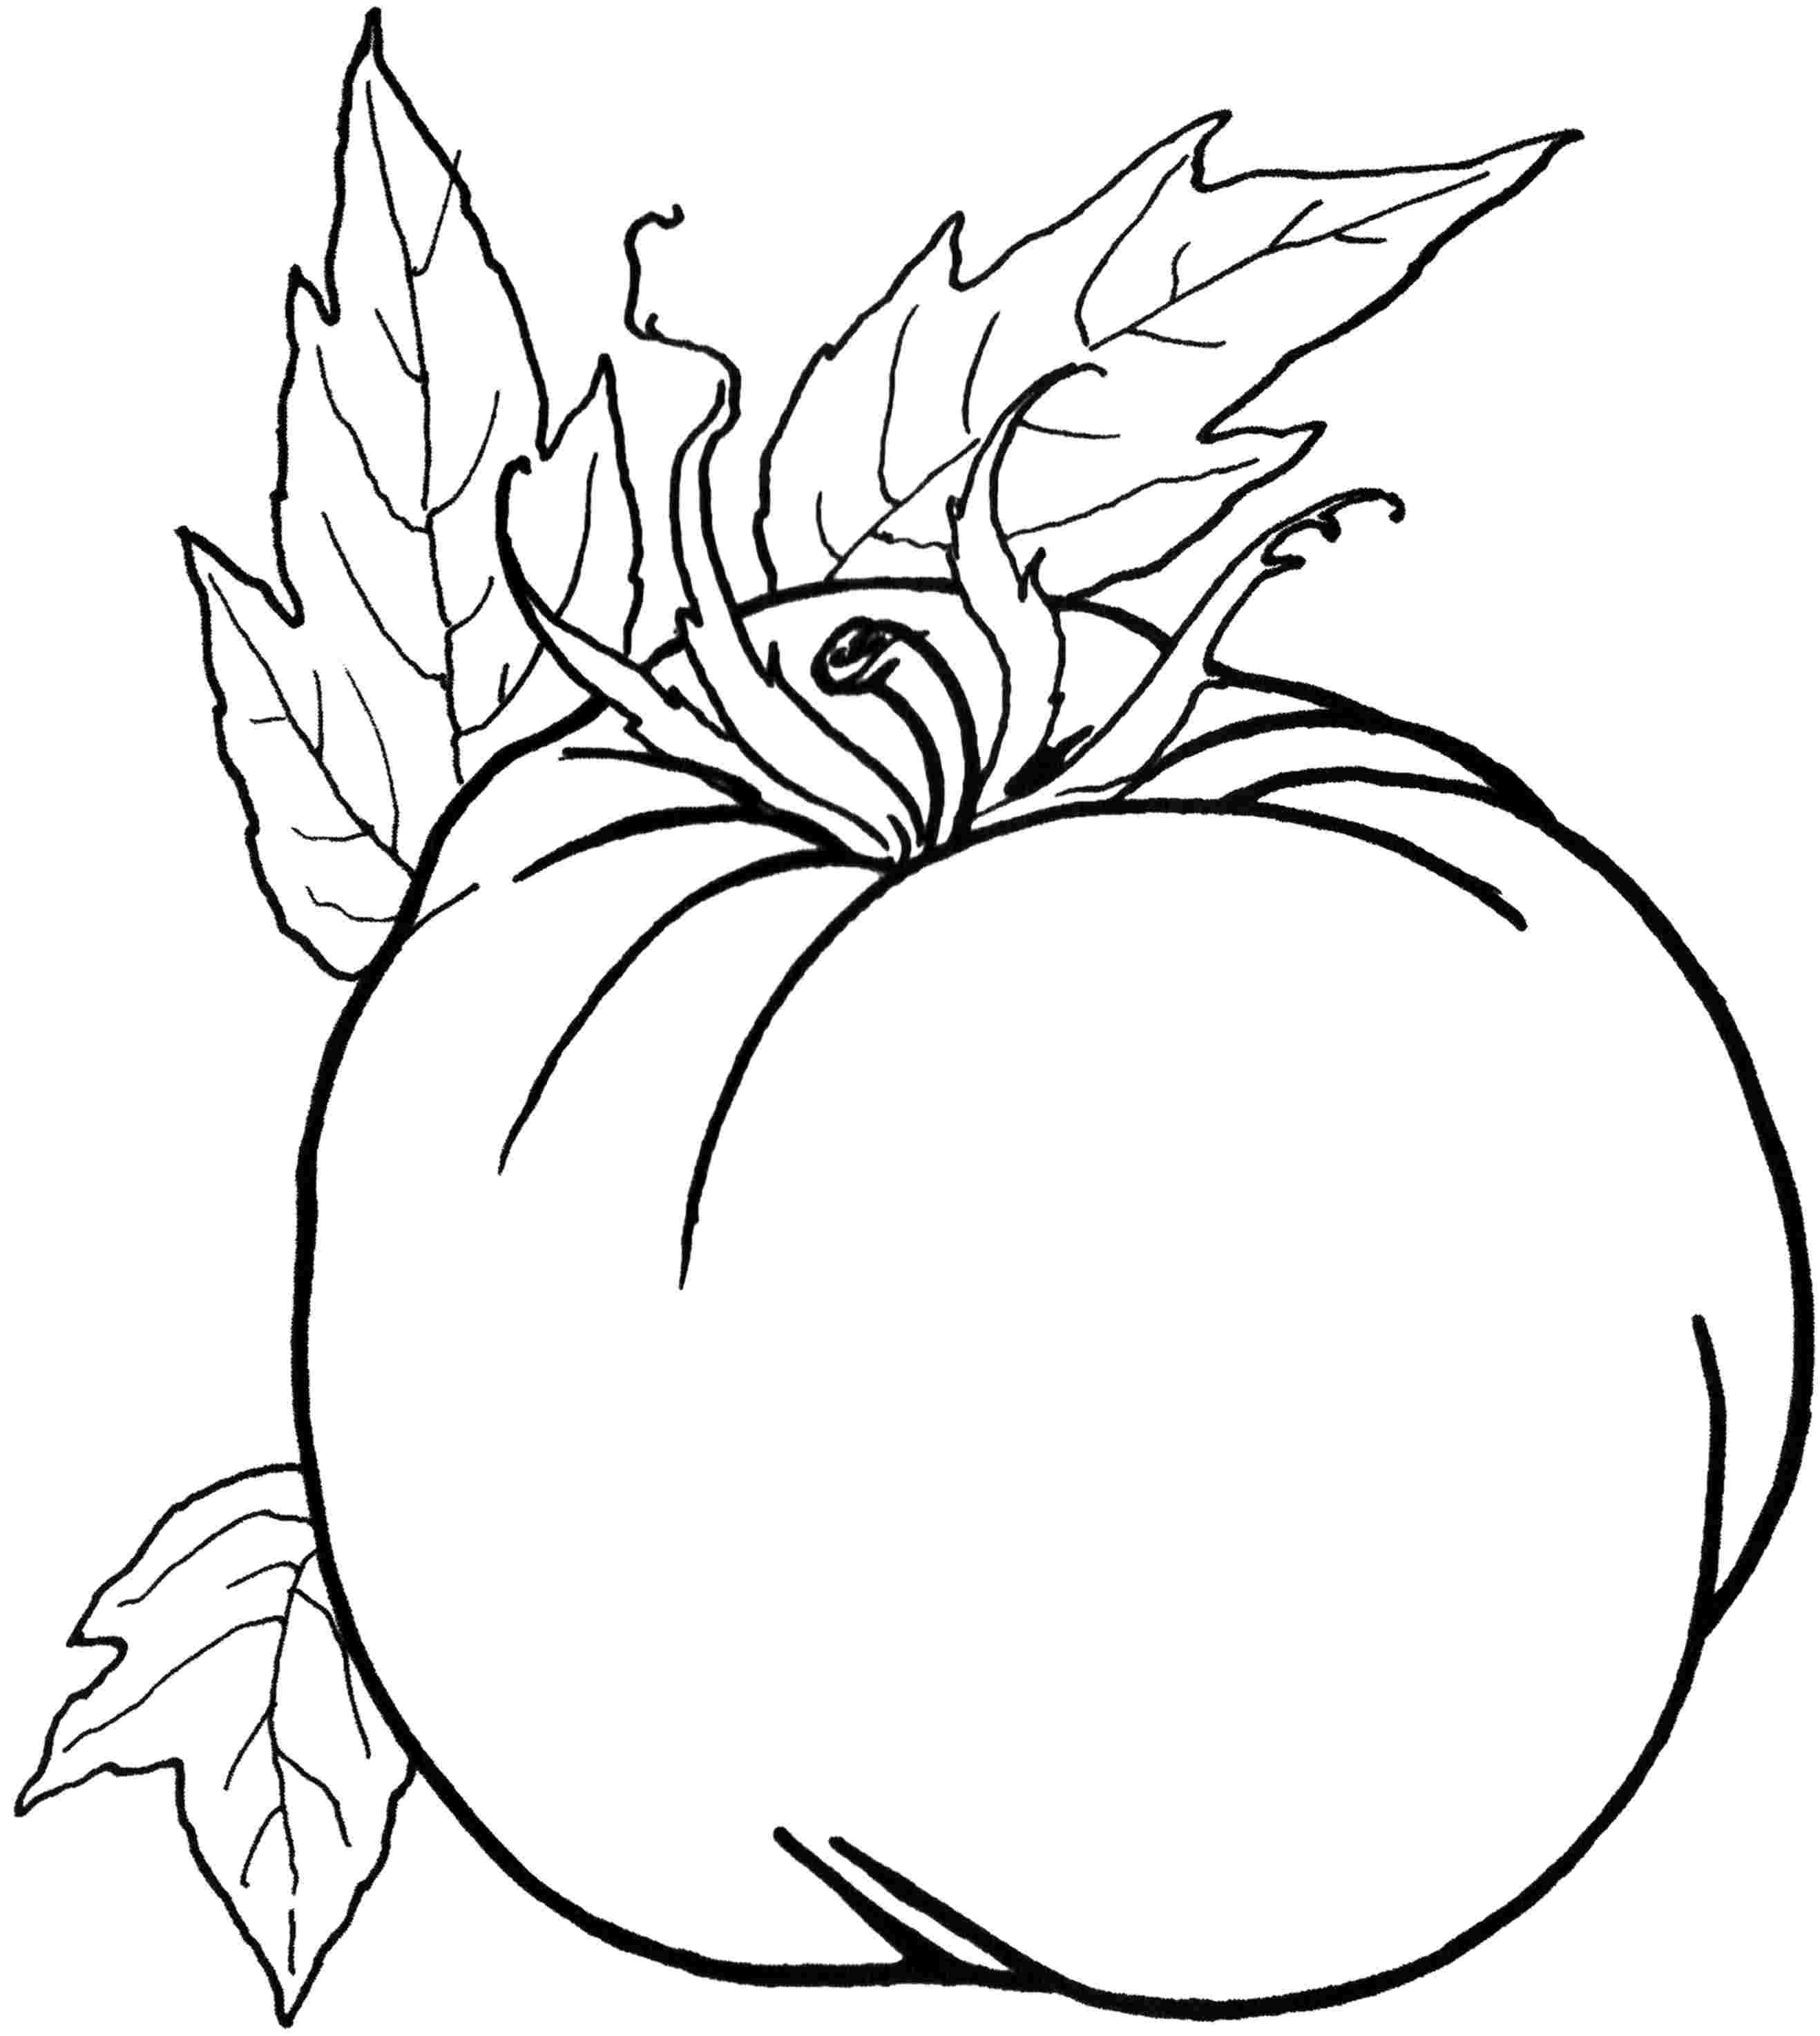 vegetable images for coloring maikling kwento na may tanong coloring pages learny kids coloring vegetable images for